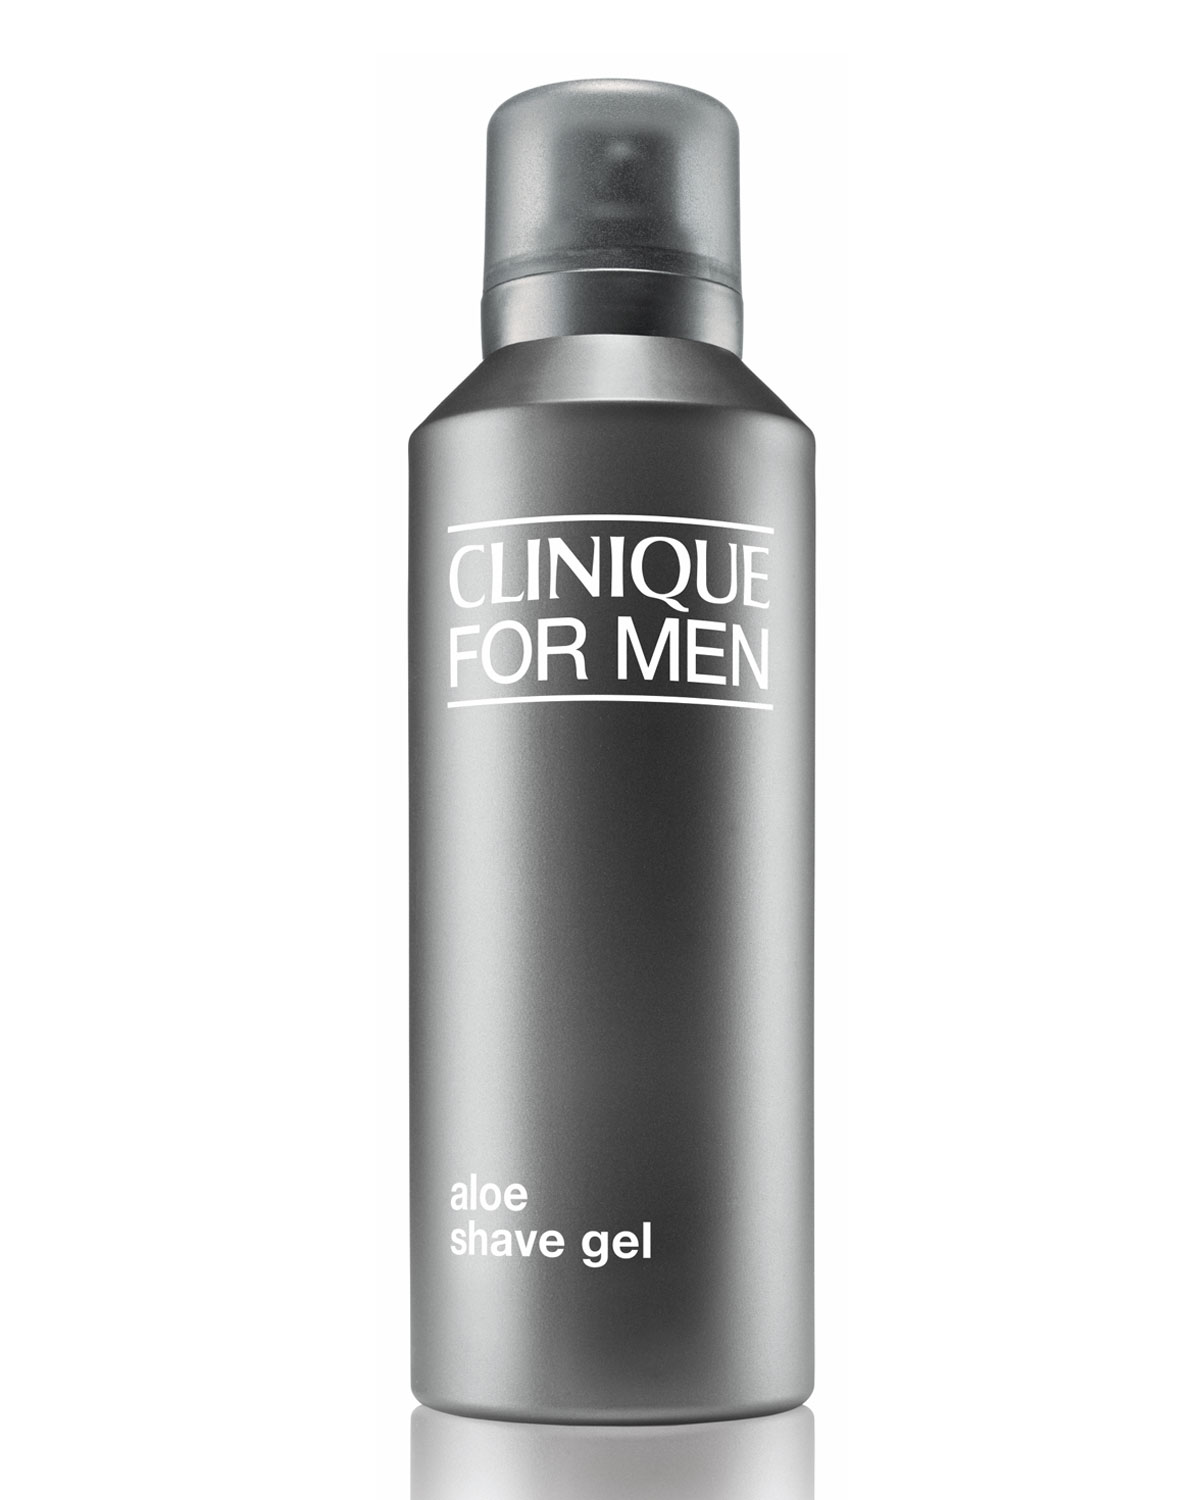 FOR MEN ALOE SHAVE GEL, 125ML